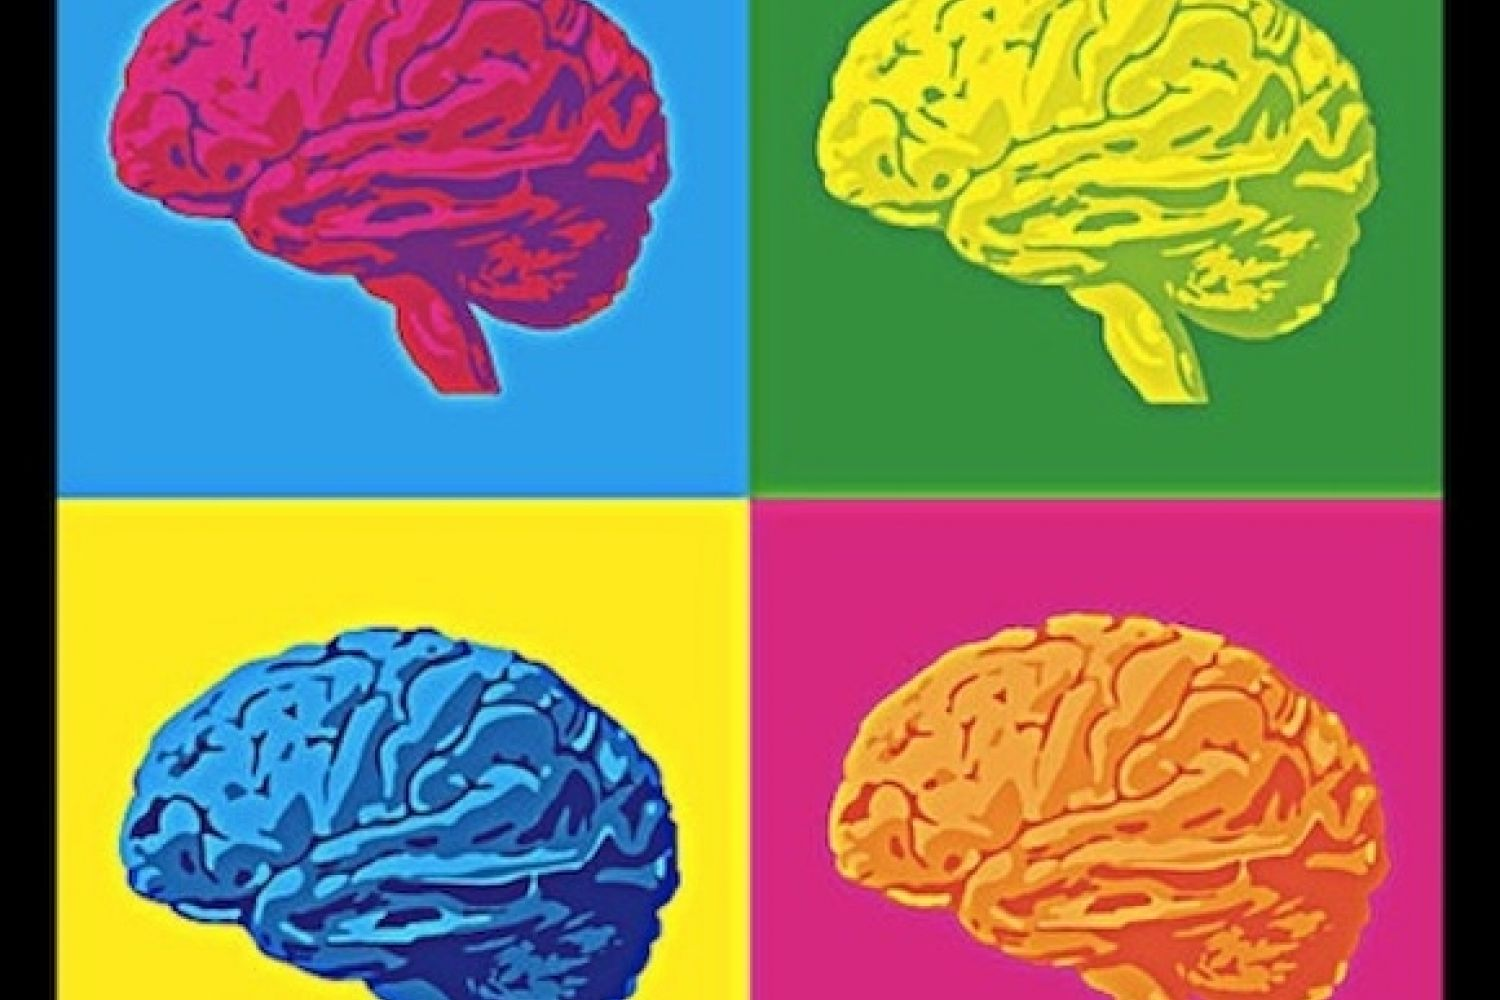 6th Annual California Cognitive Science Conference (Creativity: The Inspired Mind)